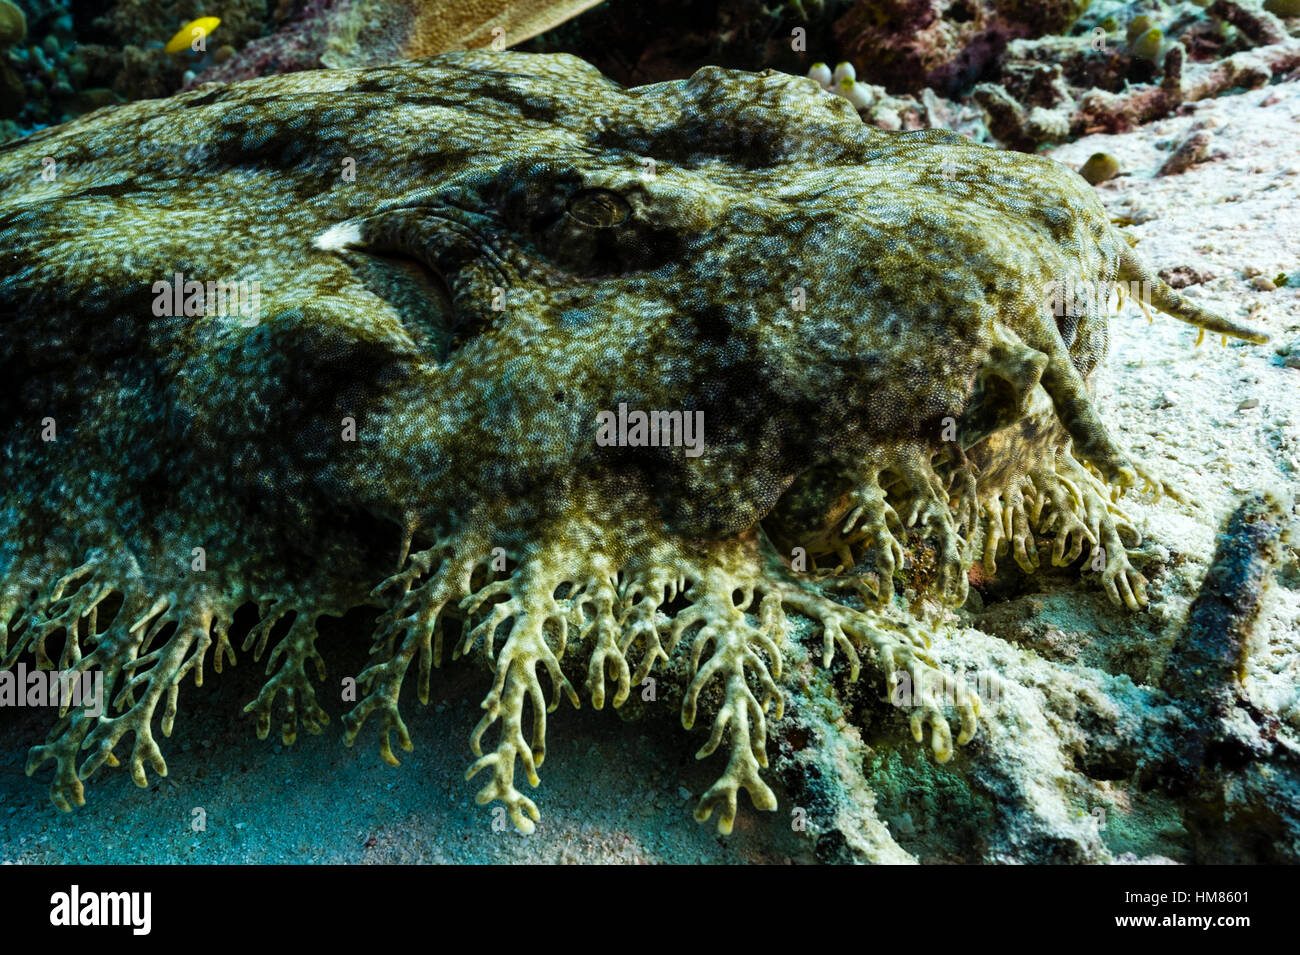 The Tasselled Wobbegong can be readily identified by the fringe of dermal lobes on its head. - Stock Image